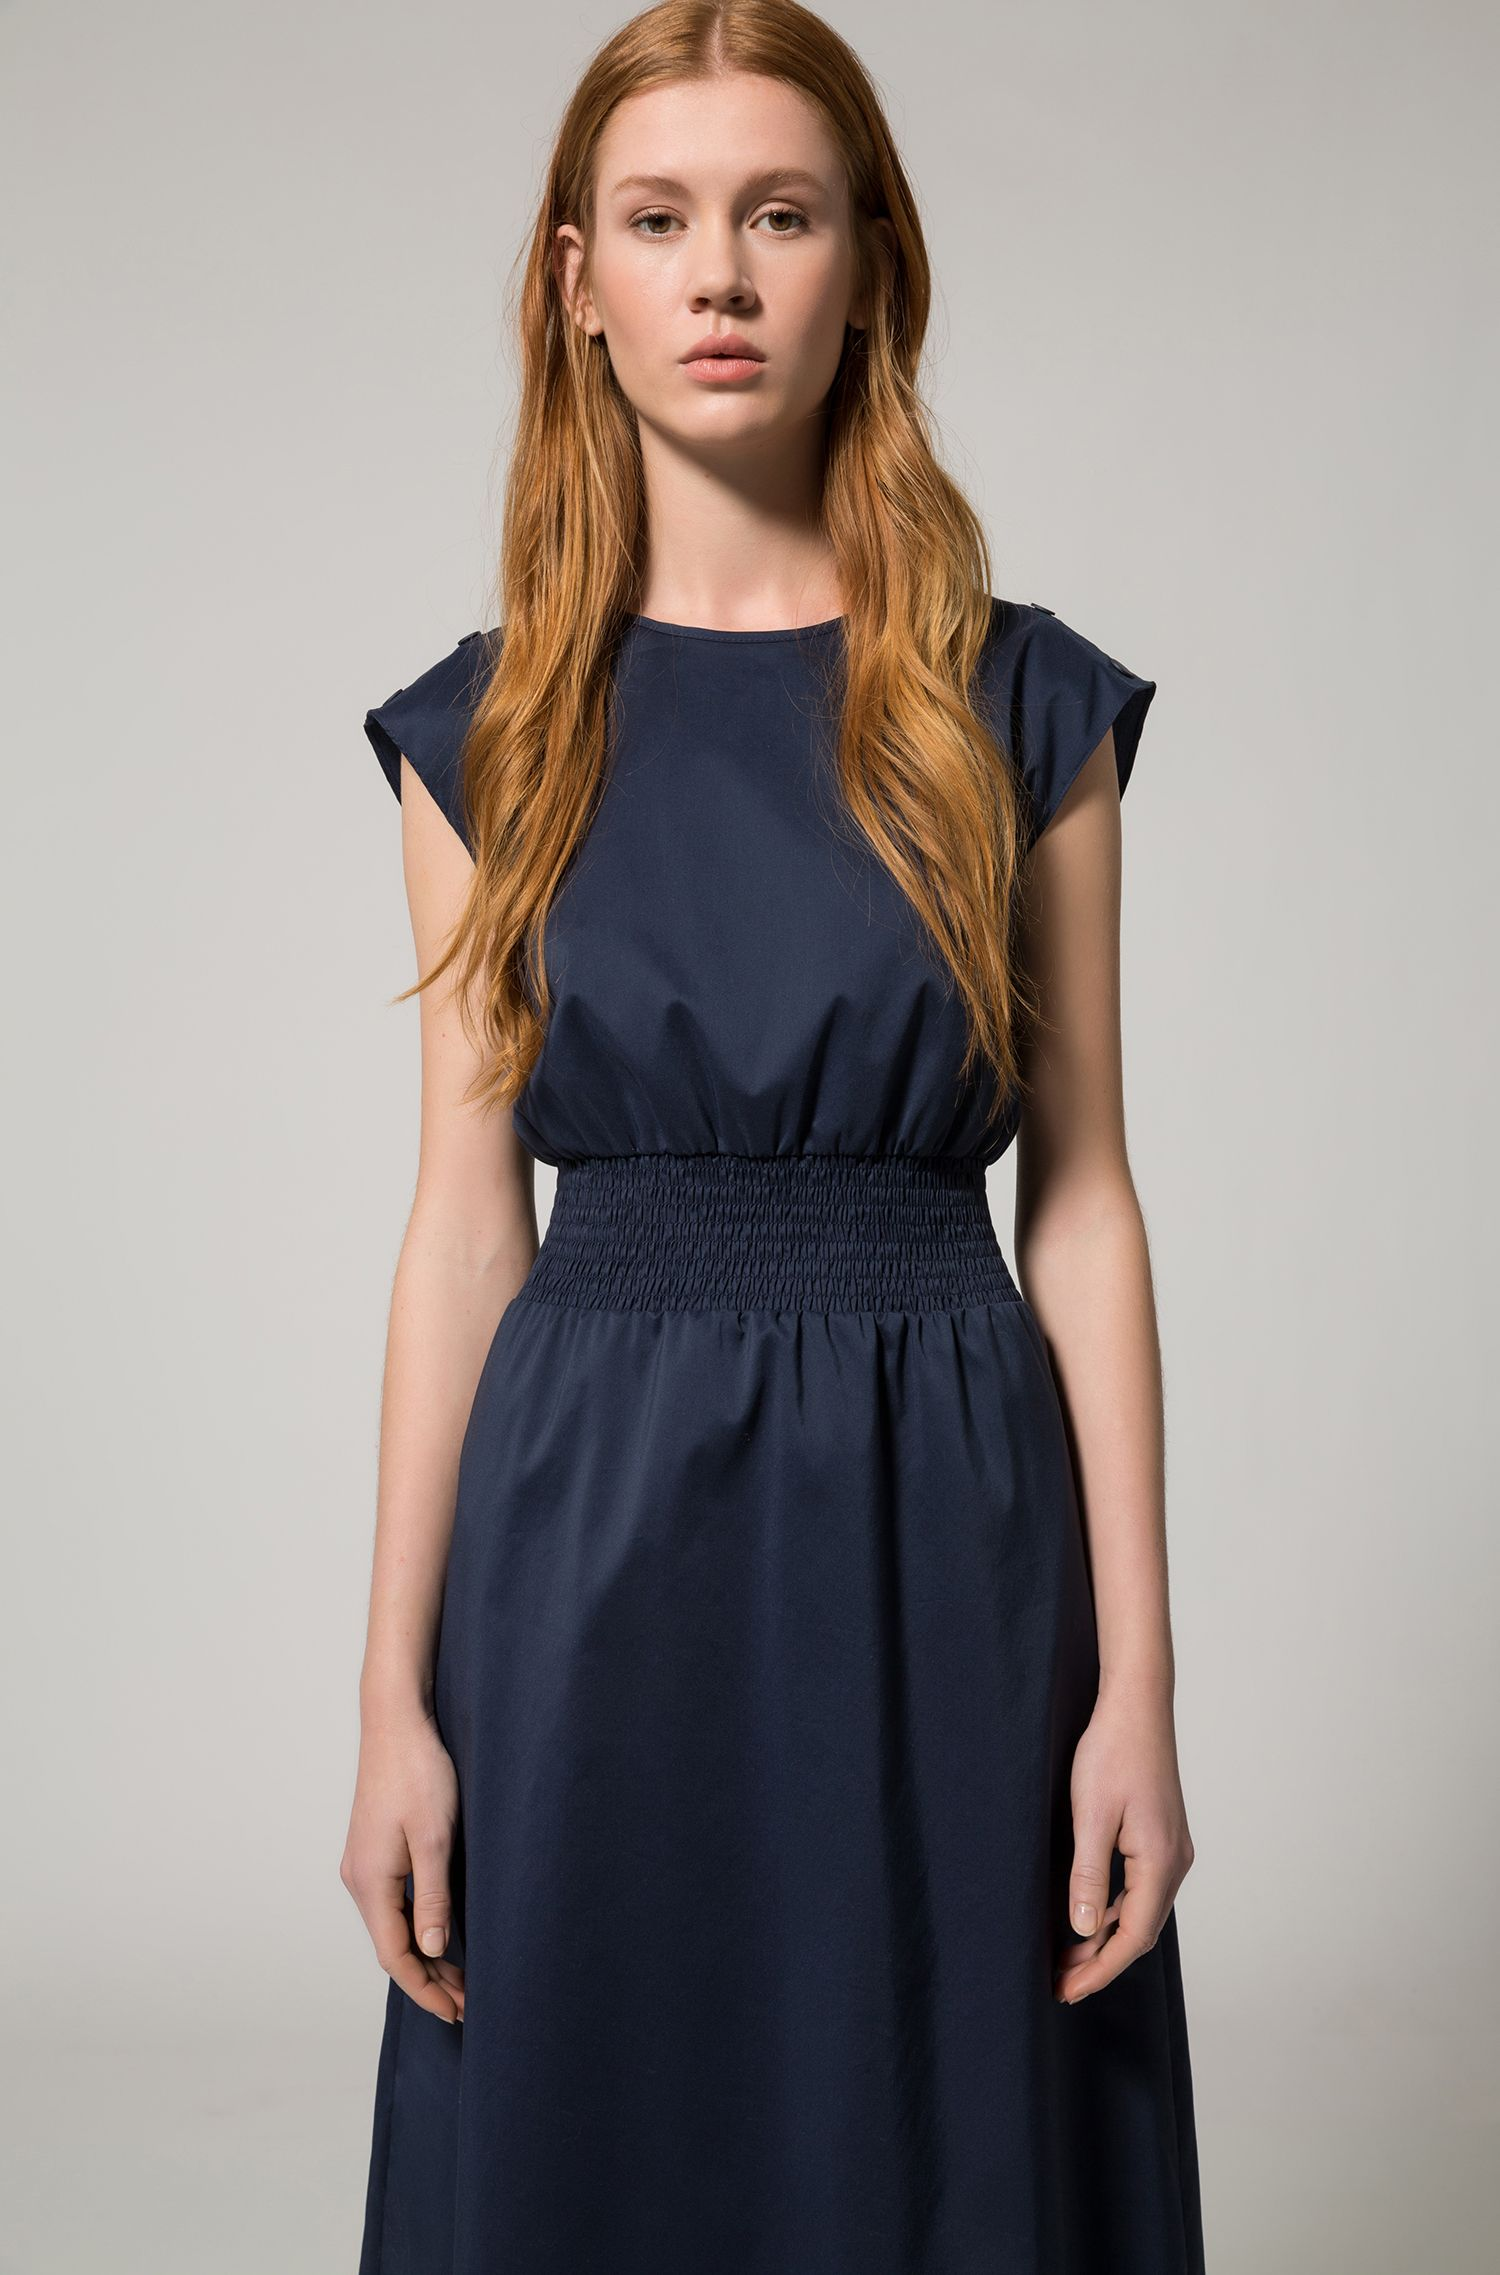 Cotton-blend sleeveless dress with smocking detail